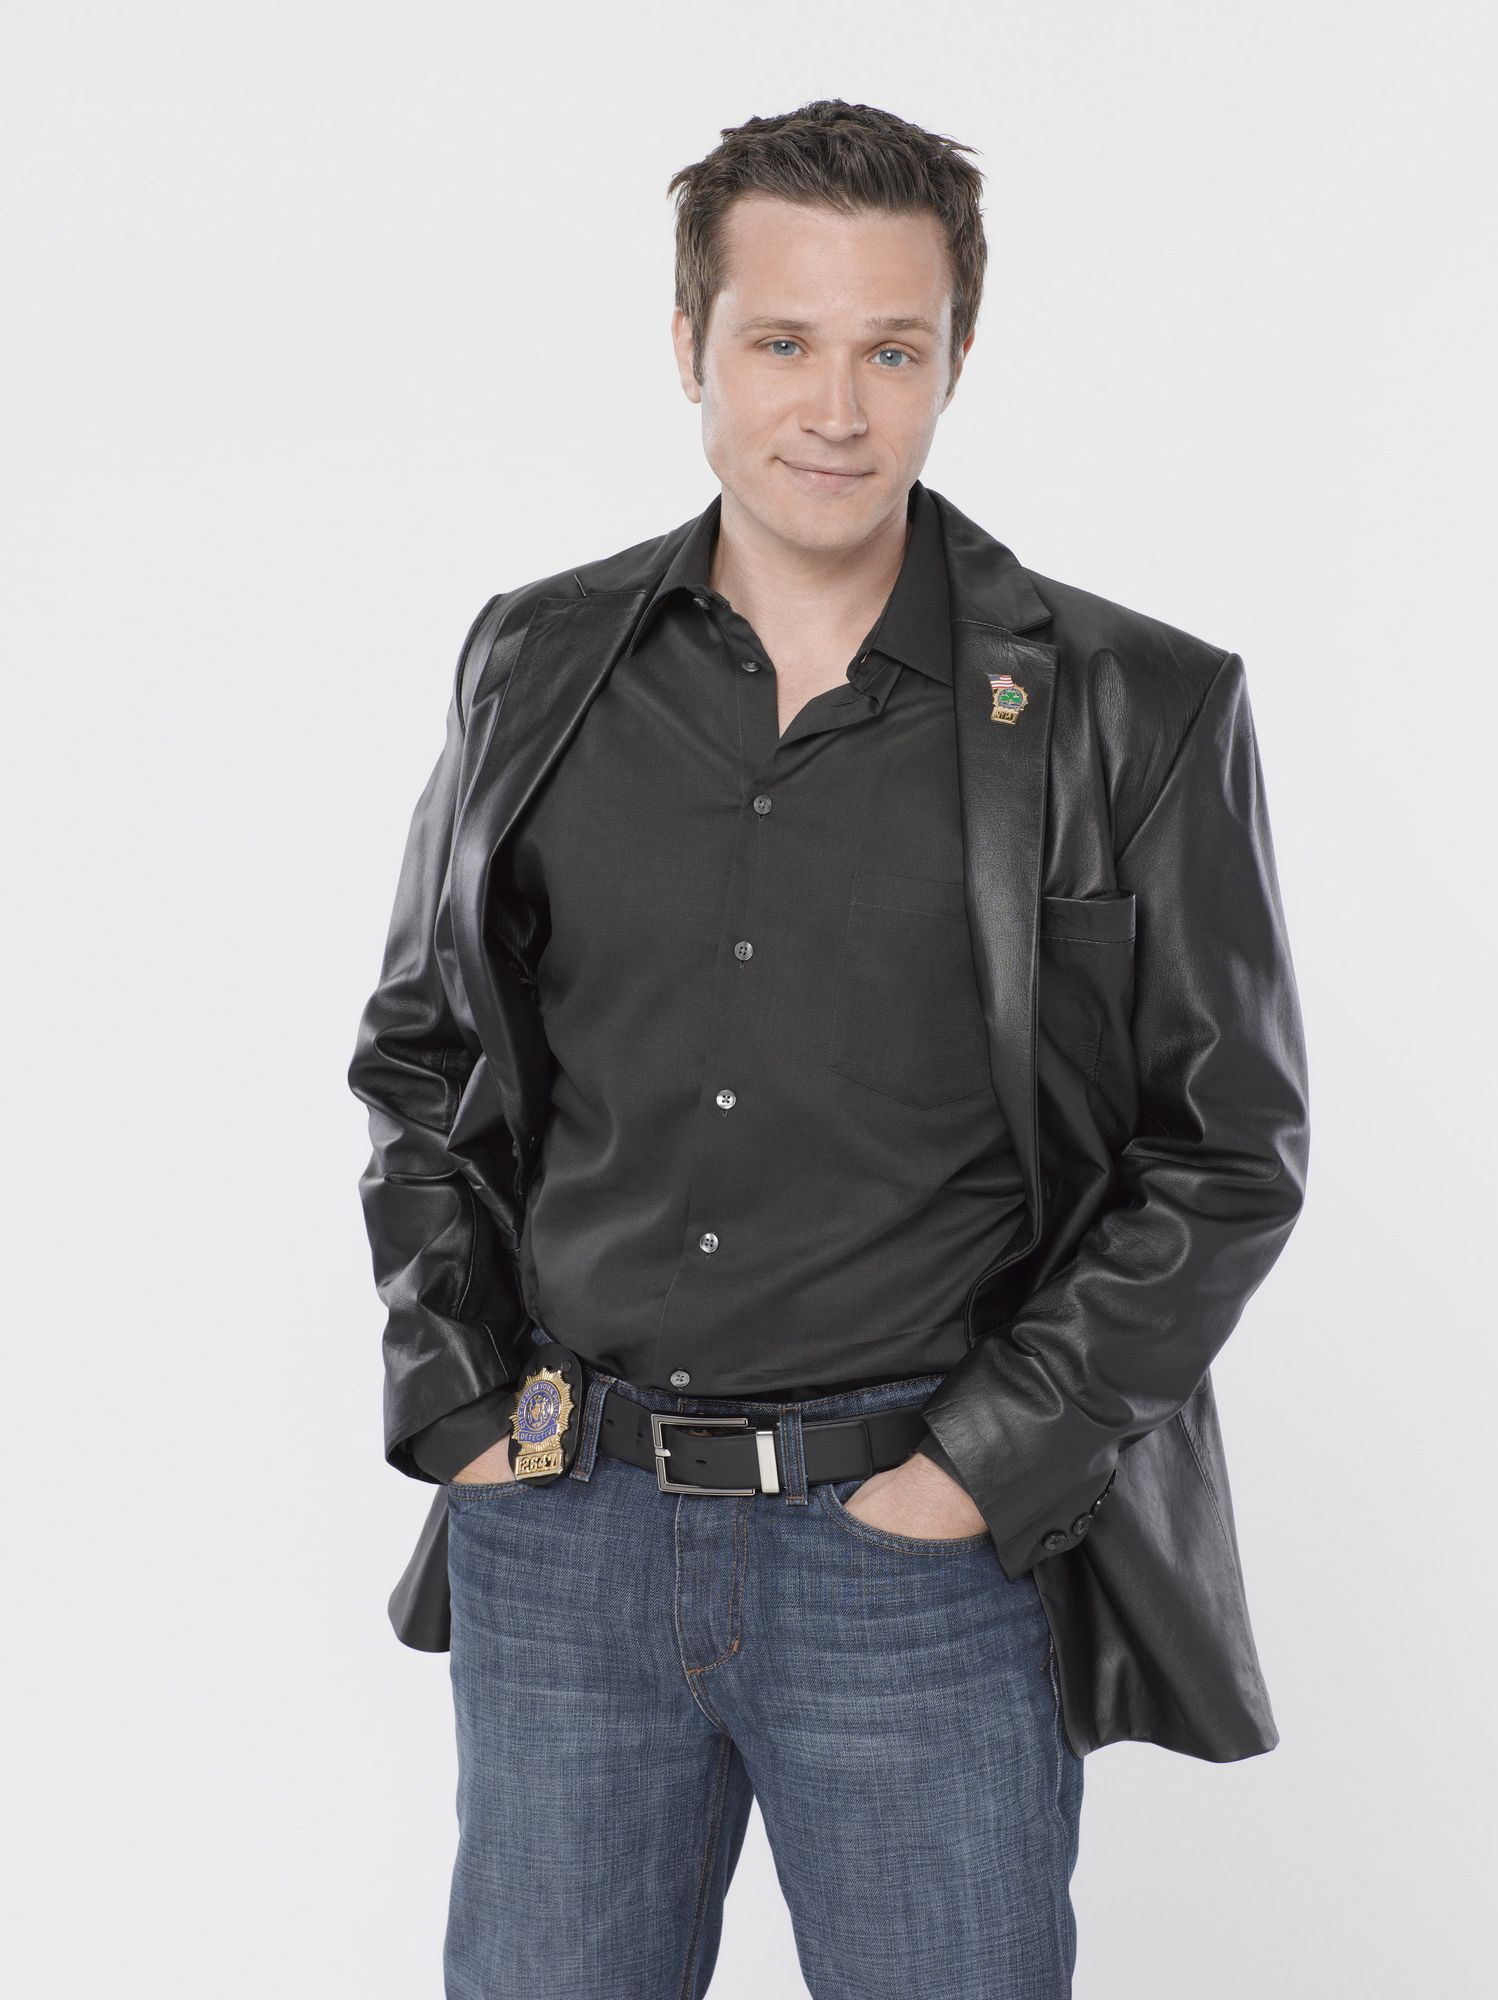 Seamus Dever Wallpapers Moved Permanently